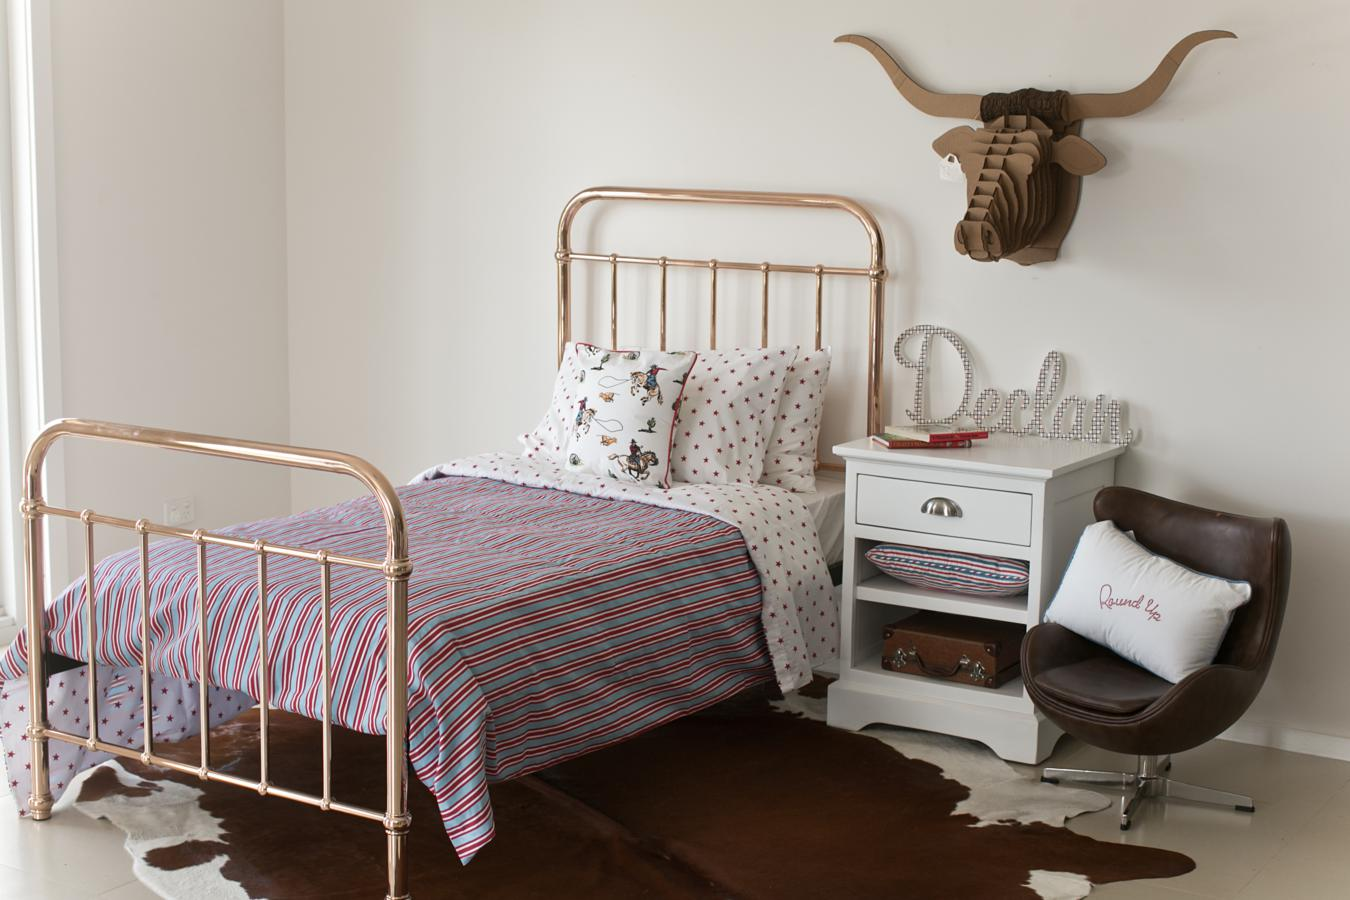 10 great finds for kids rooms you can buy online the for Where can you buy beds